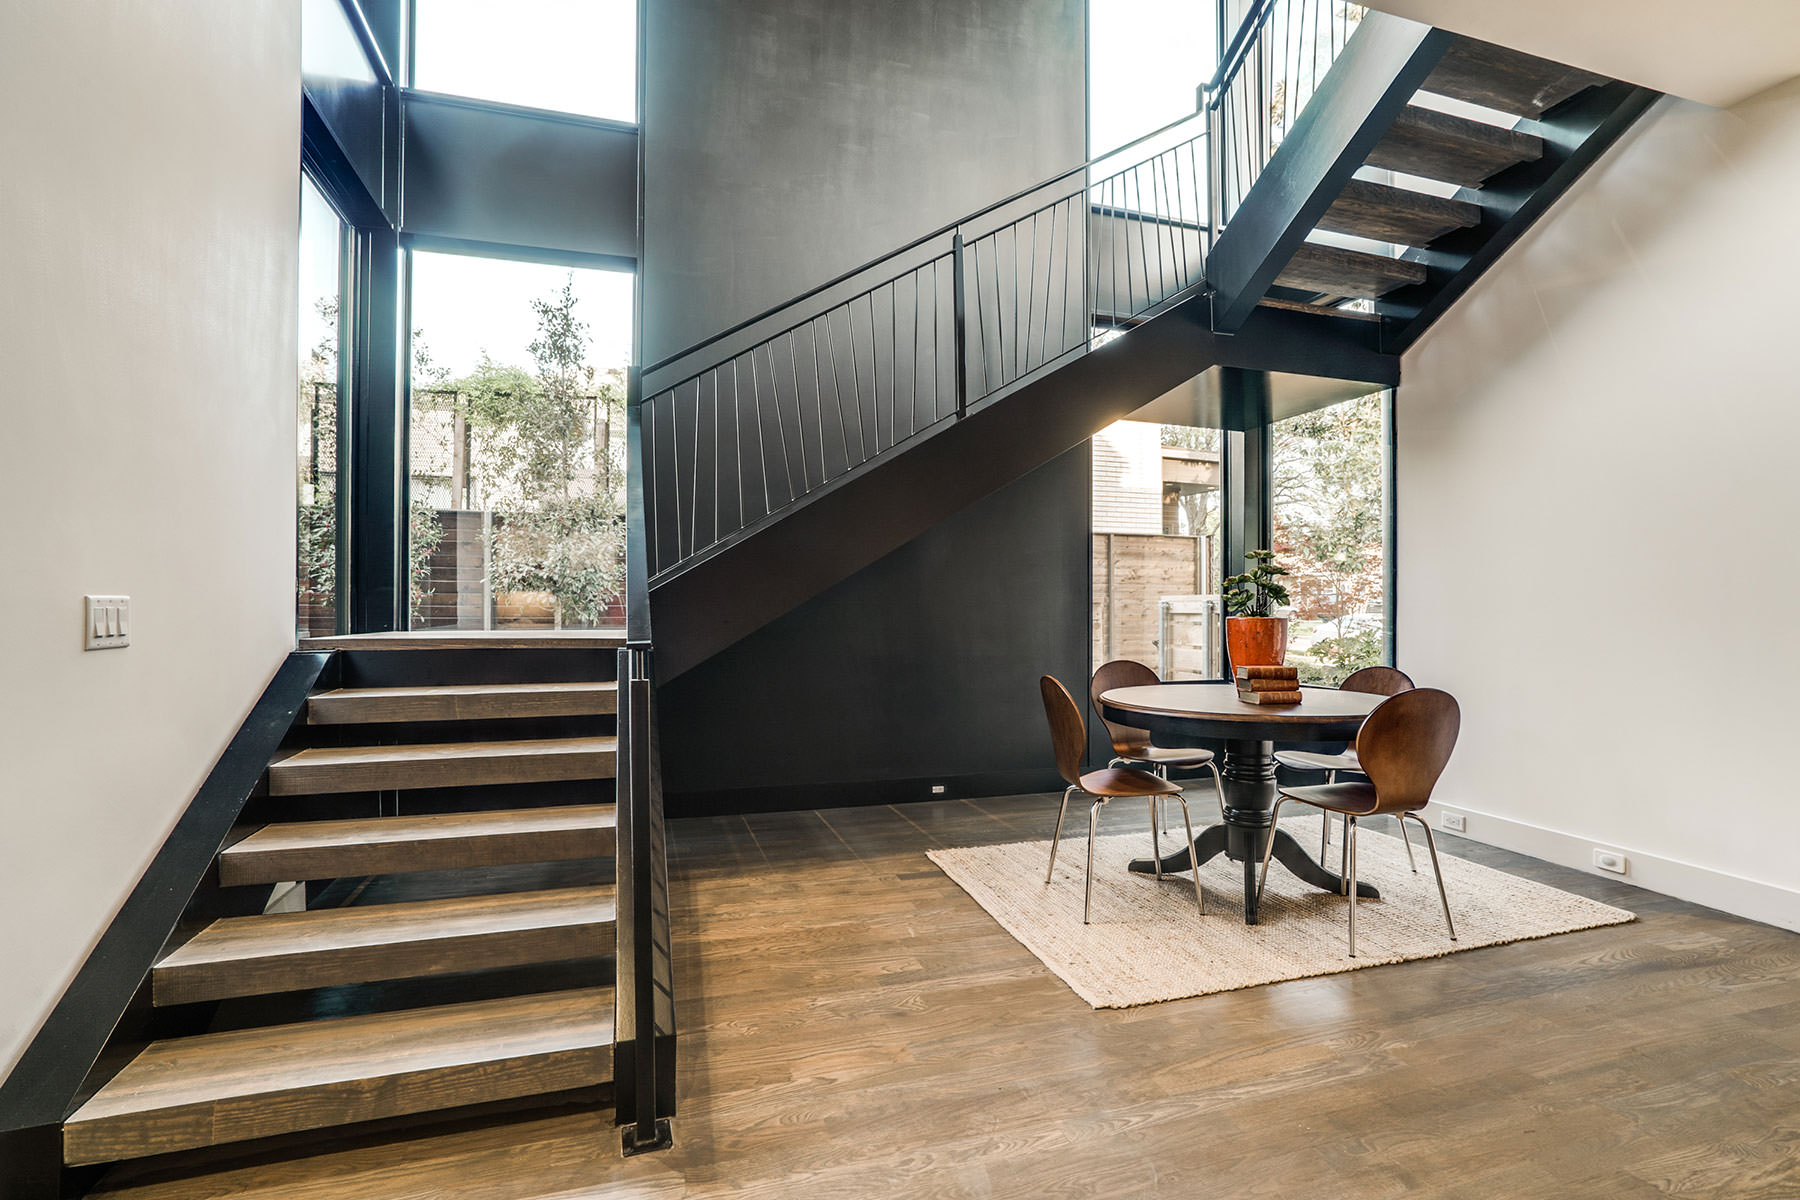 4915-stanford-ave-dallas-tx-High-Res-4